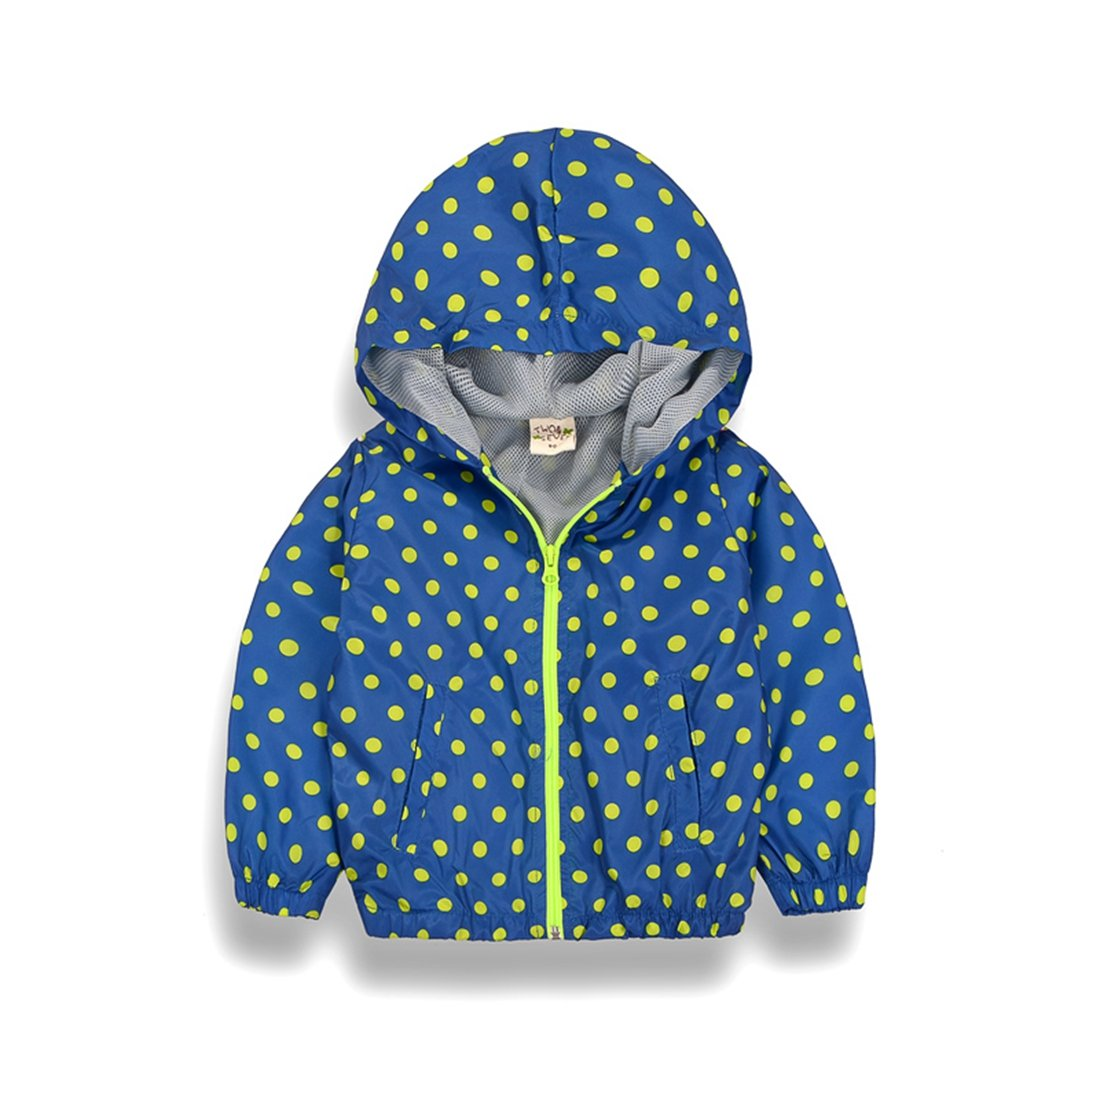 LL STUDIO Kids' Polka-dot Blue Windbreaker Waterproof Raincoat Hooded Jackets Coat,Age 1.5-9